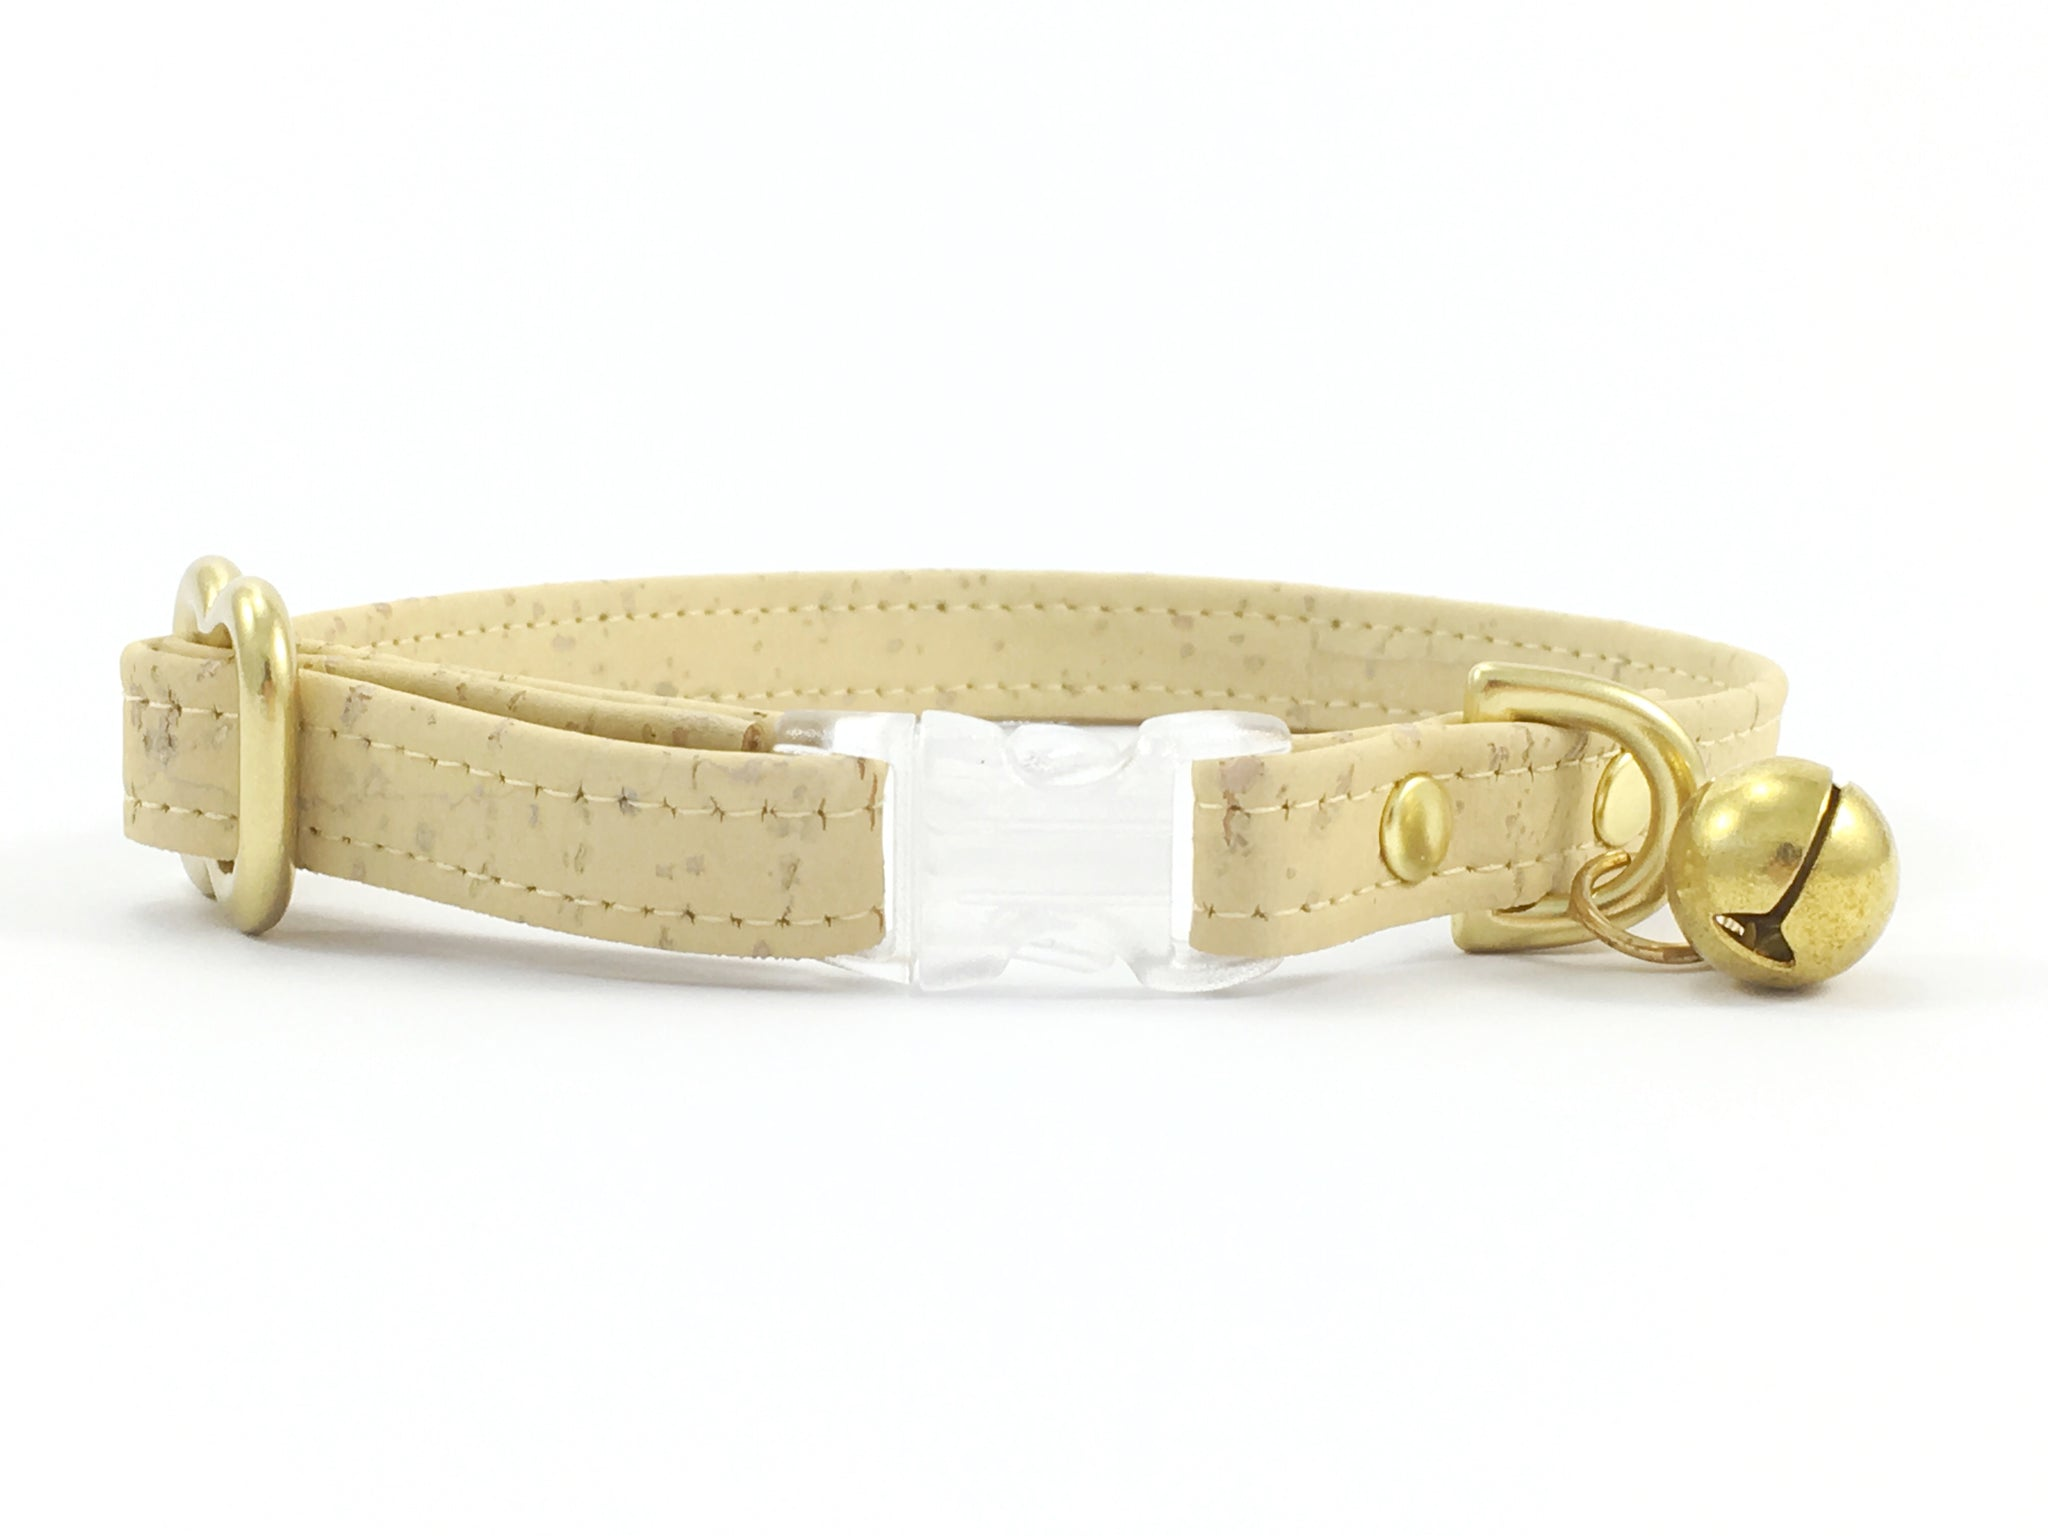 Luxury pastel yellow vegan cork 'leather' breakaway safety cat collar with transparent breakaway buckle and solid brass bell and hardware